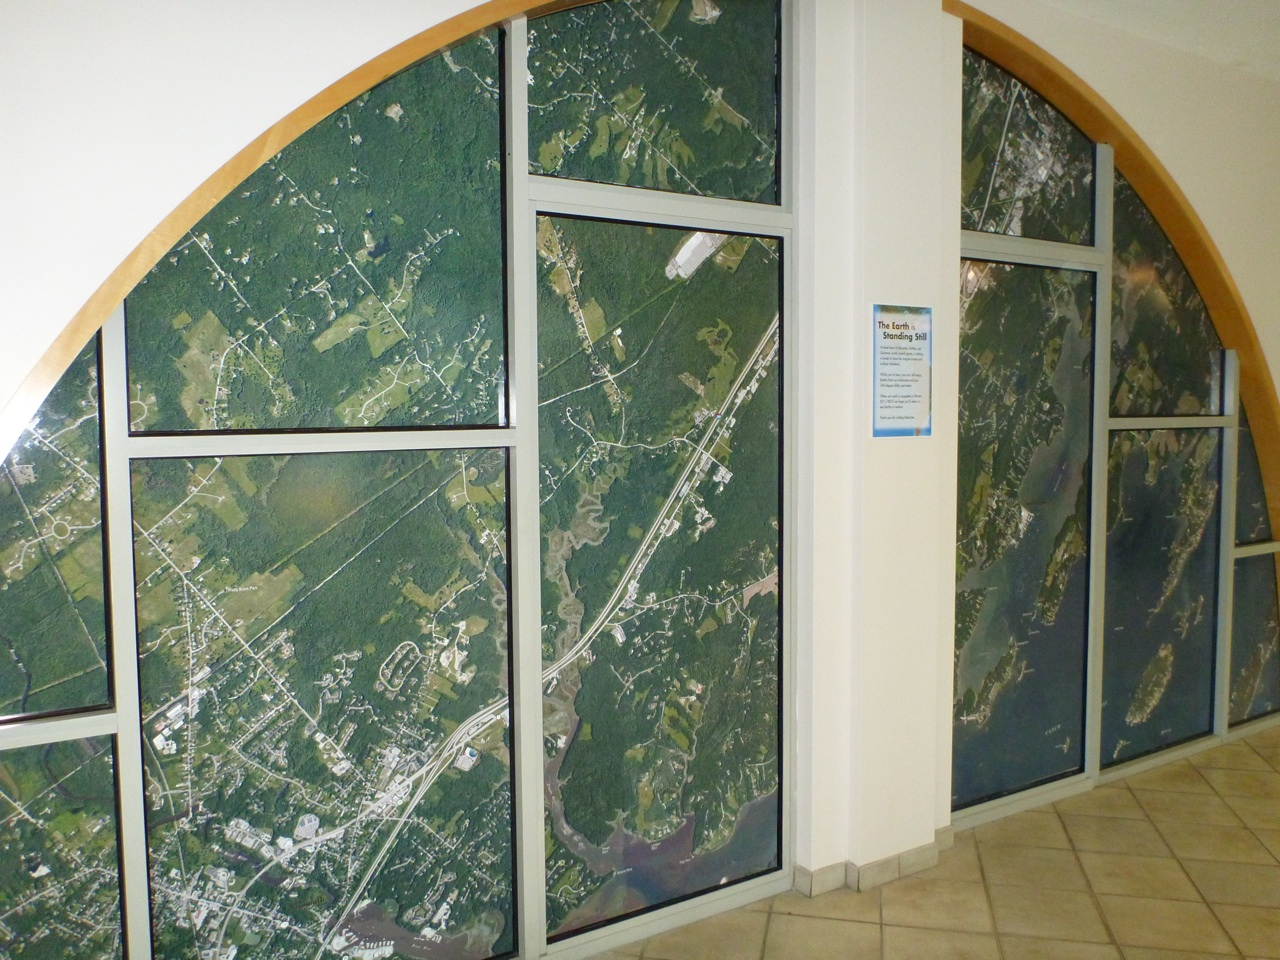 A Wall In DeLORME With A Map On It